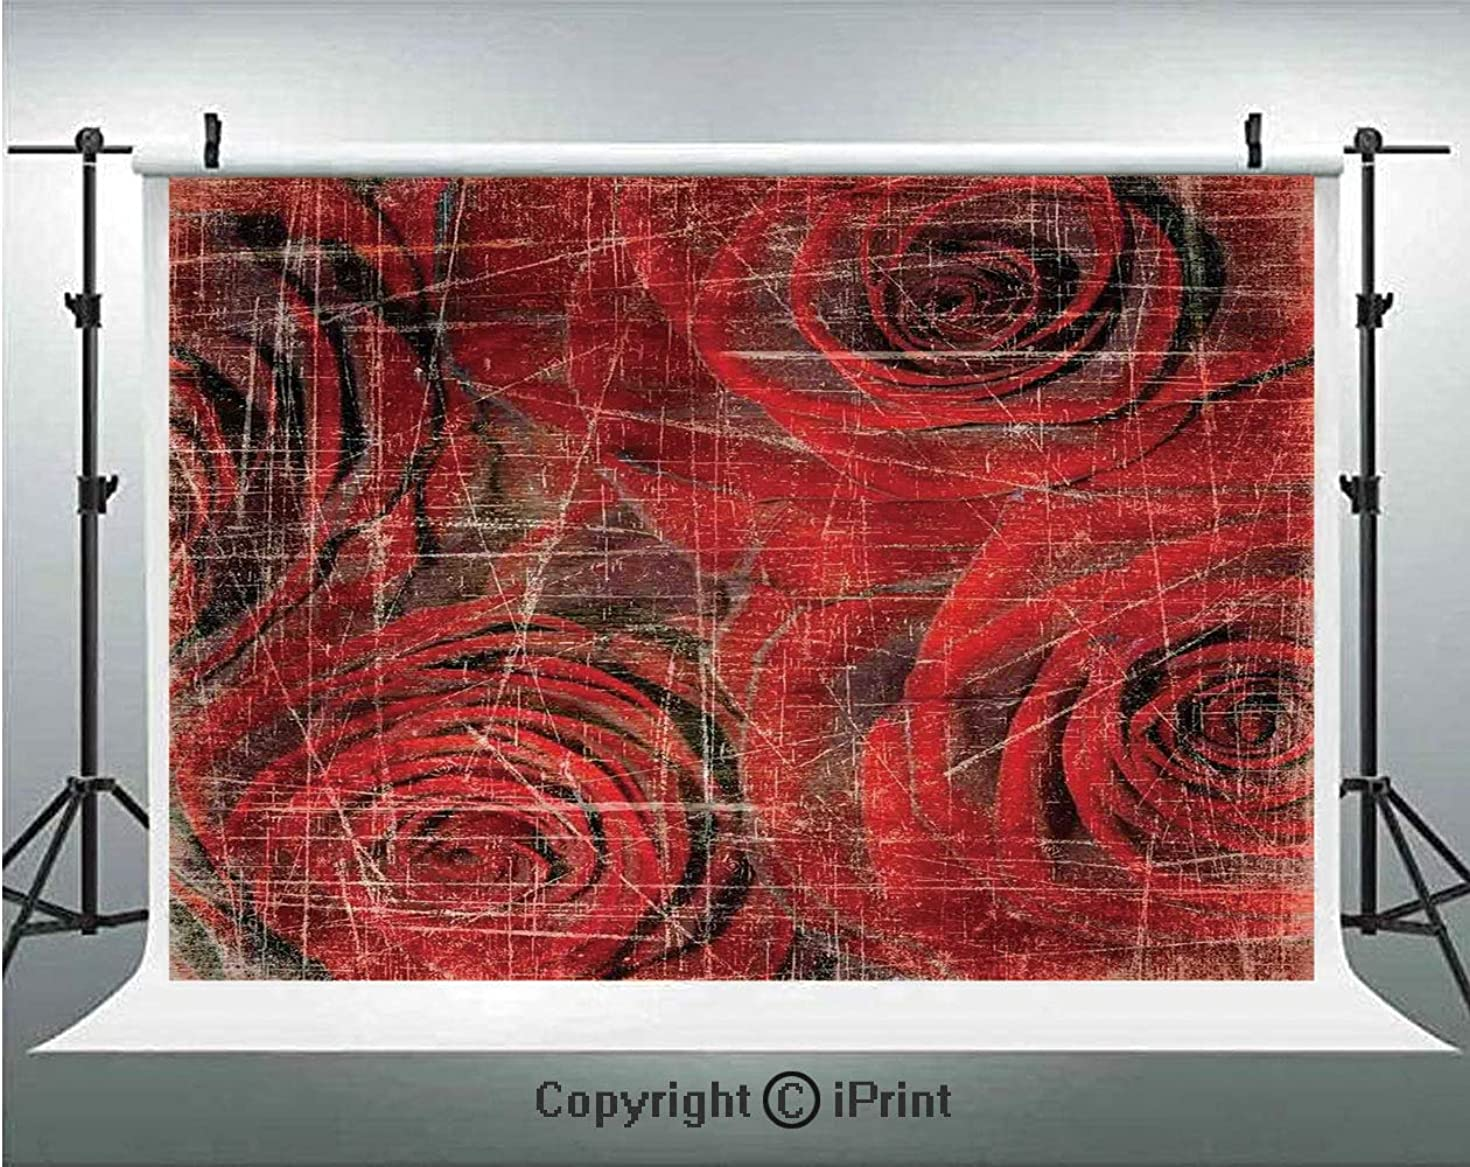 Roses Decorations Photography Backdrops Abstract Grunge Artwork with Roses Scratches Old Vintage Romantic Memories Theme,Birthday Party Background Customized Microfiber Photo Studio Props,10x10ft,Red